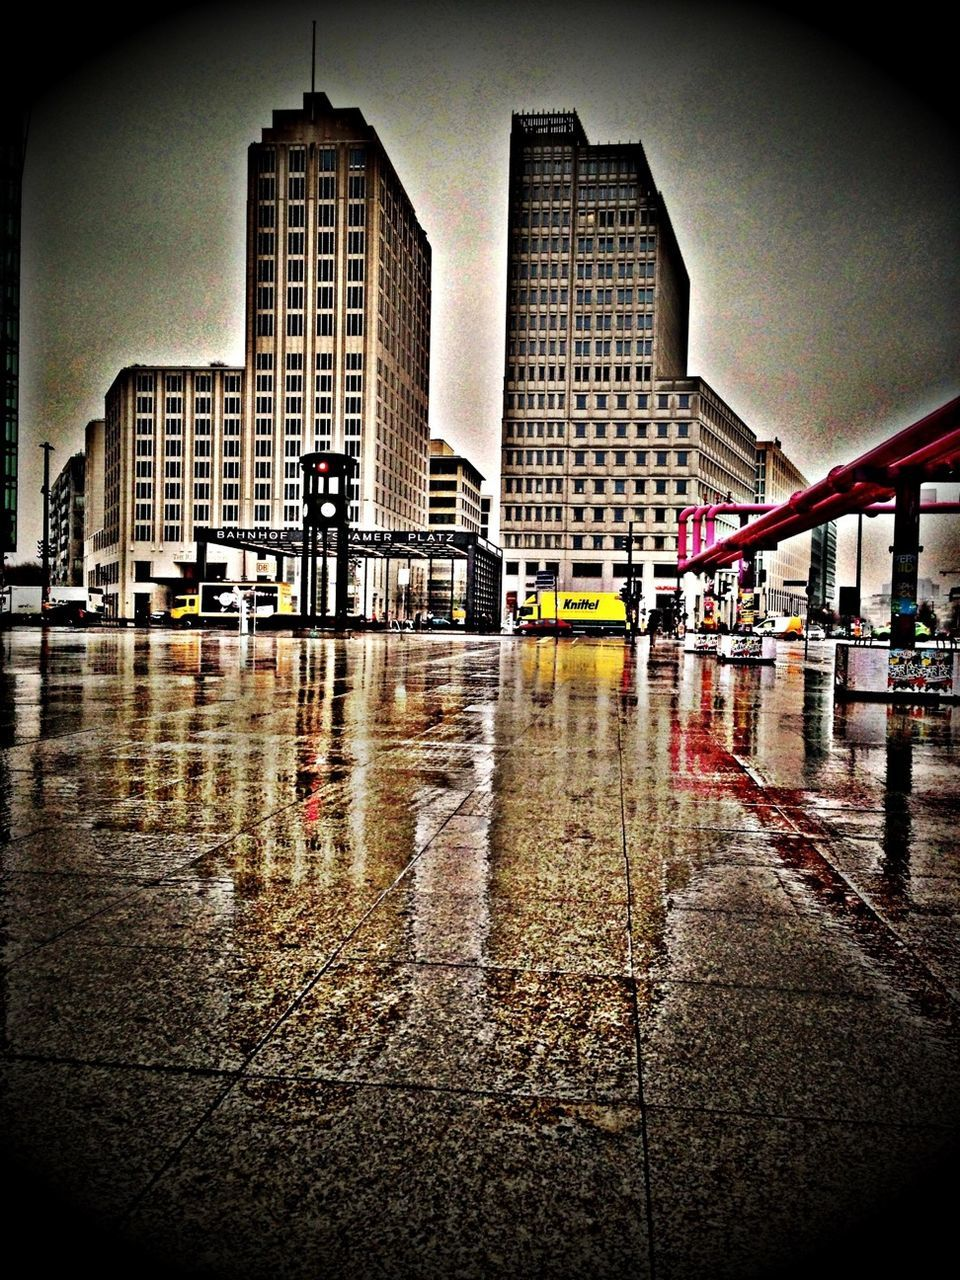 architecture, built structure, water, reflection, wet, day, building exterior, outdoors, city, no people, skyscraper, puddle, sky, modern